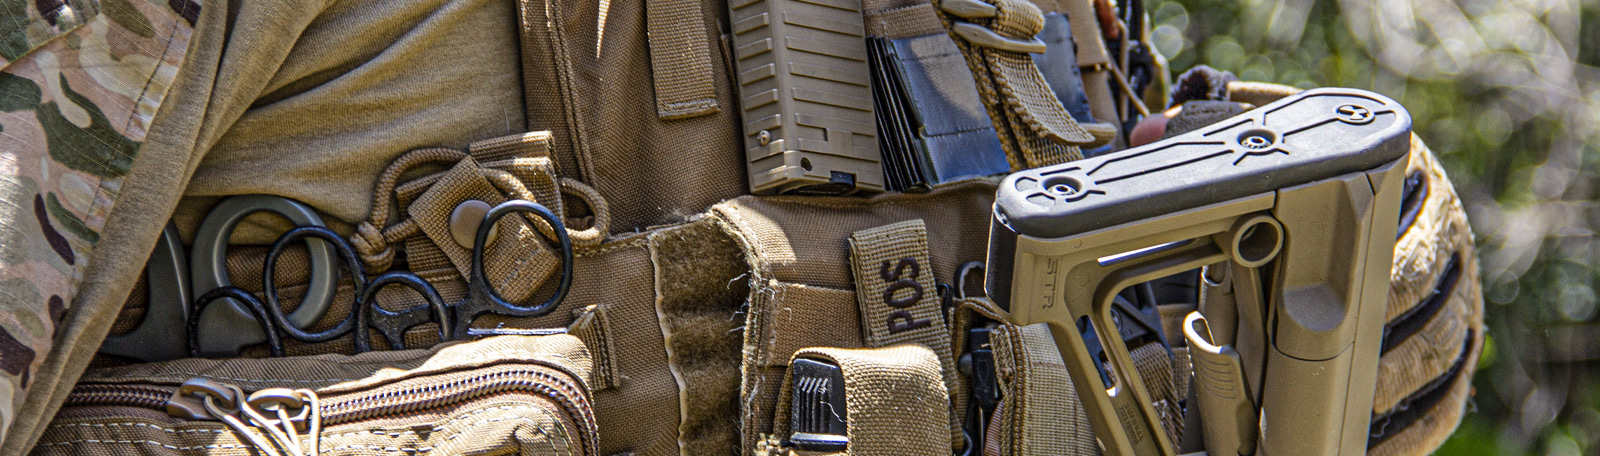 Gear - Protection Equipment Accessories Category